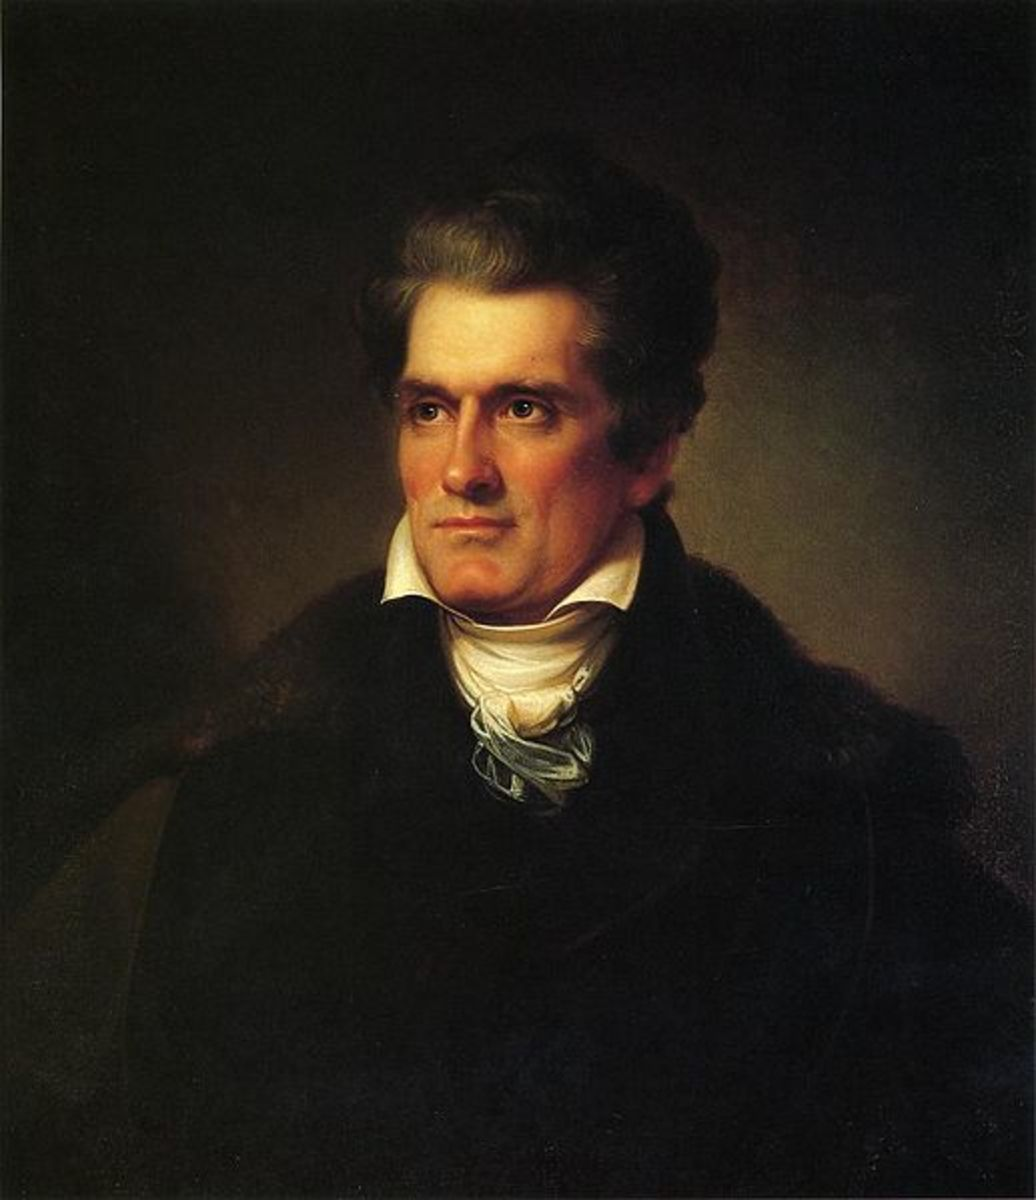 John C Calhoun  This work is in the public domain in the United States, and those countries with a copyright term of life of the author plus 100 years or less.